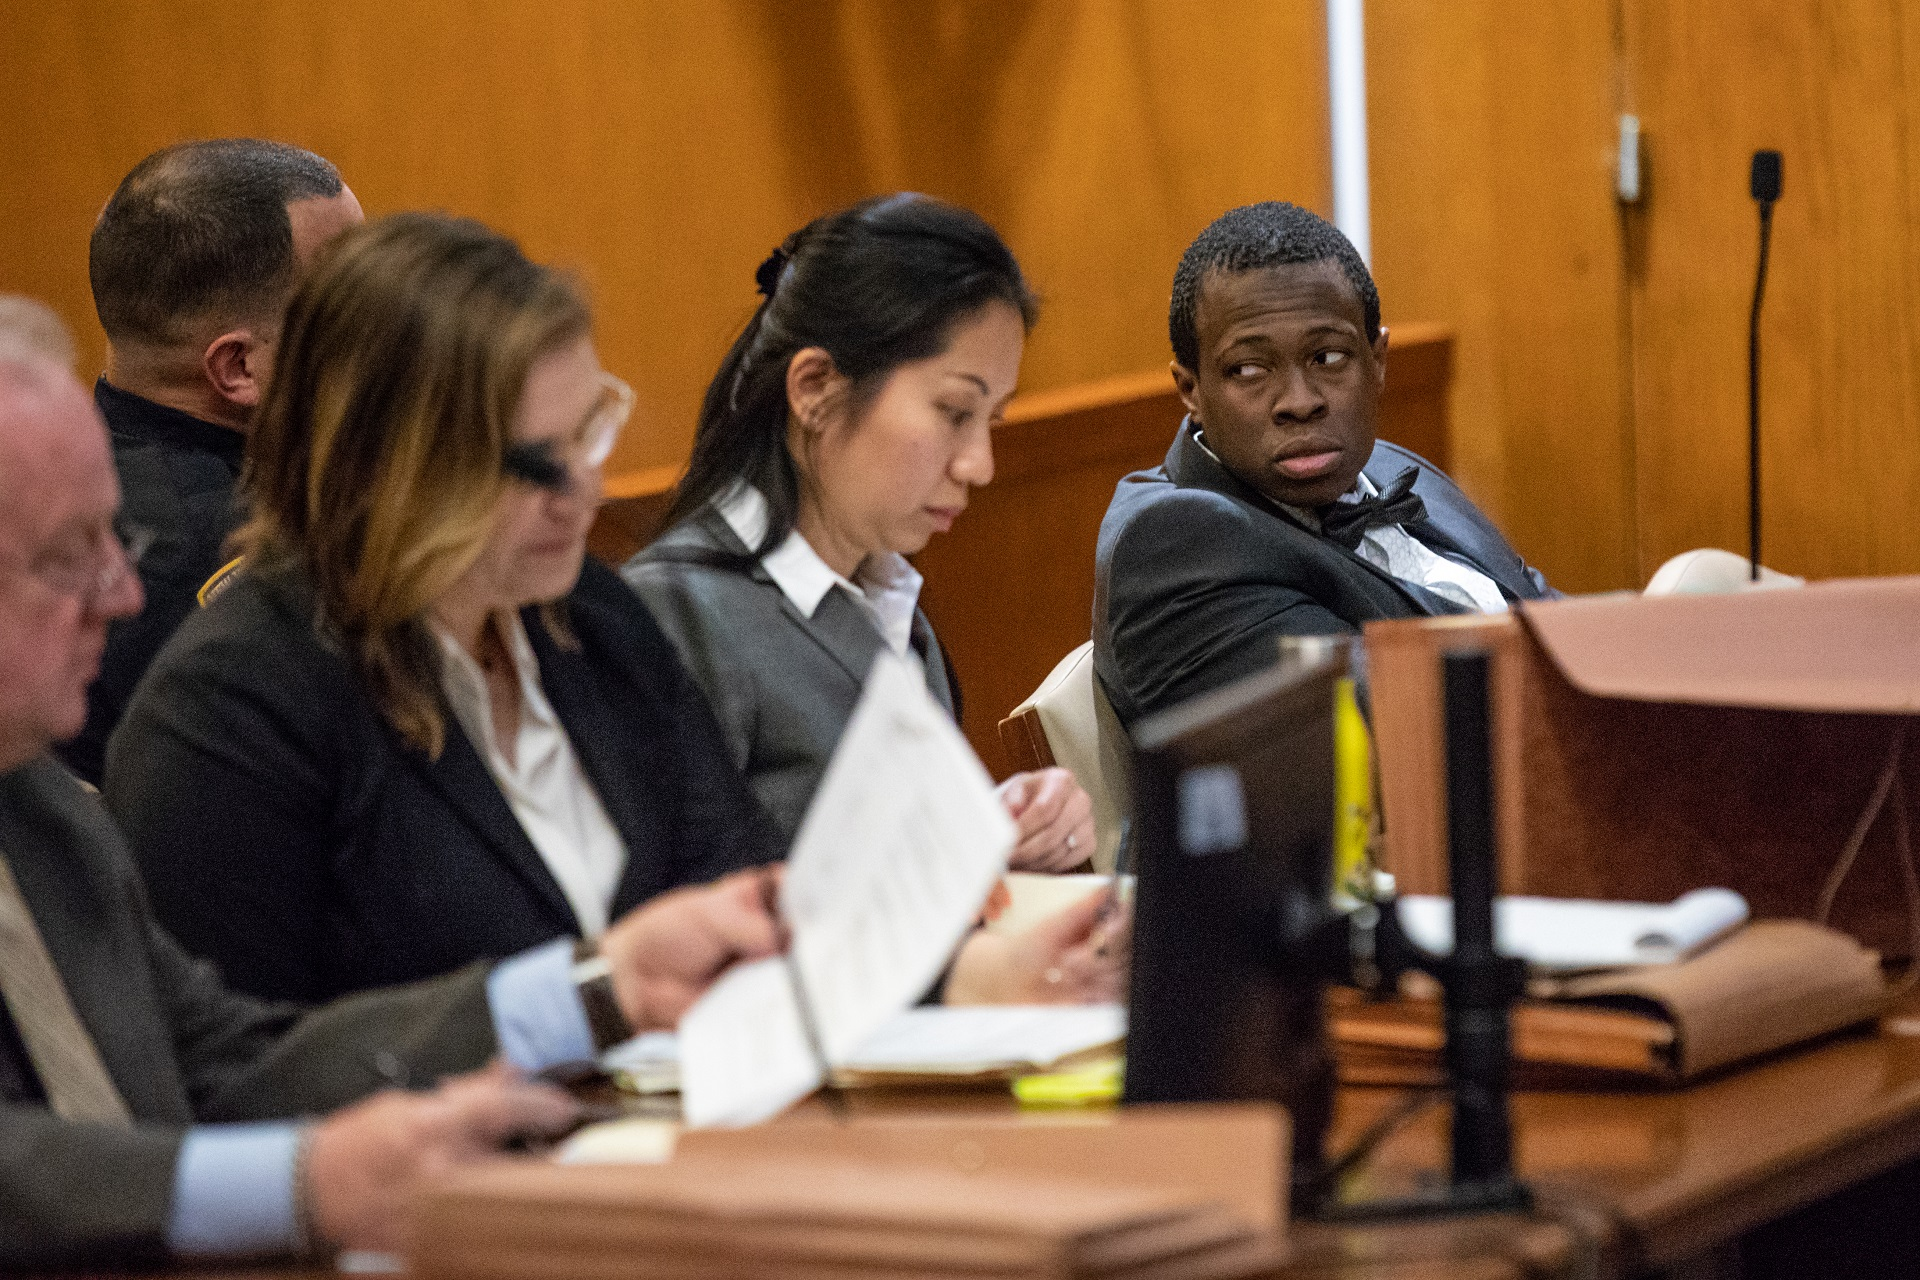 Chanel Lewis (right) glances into the gallery during opening statements in his murder retrial March 18. Lewis is charged with first-degree murder for allegedly killing Karina Vetrano near her Howard Beach home. Pool photo by Uli Seit